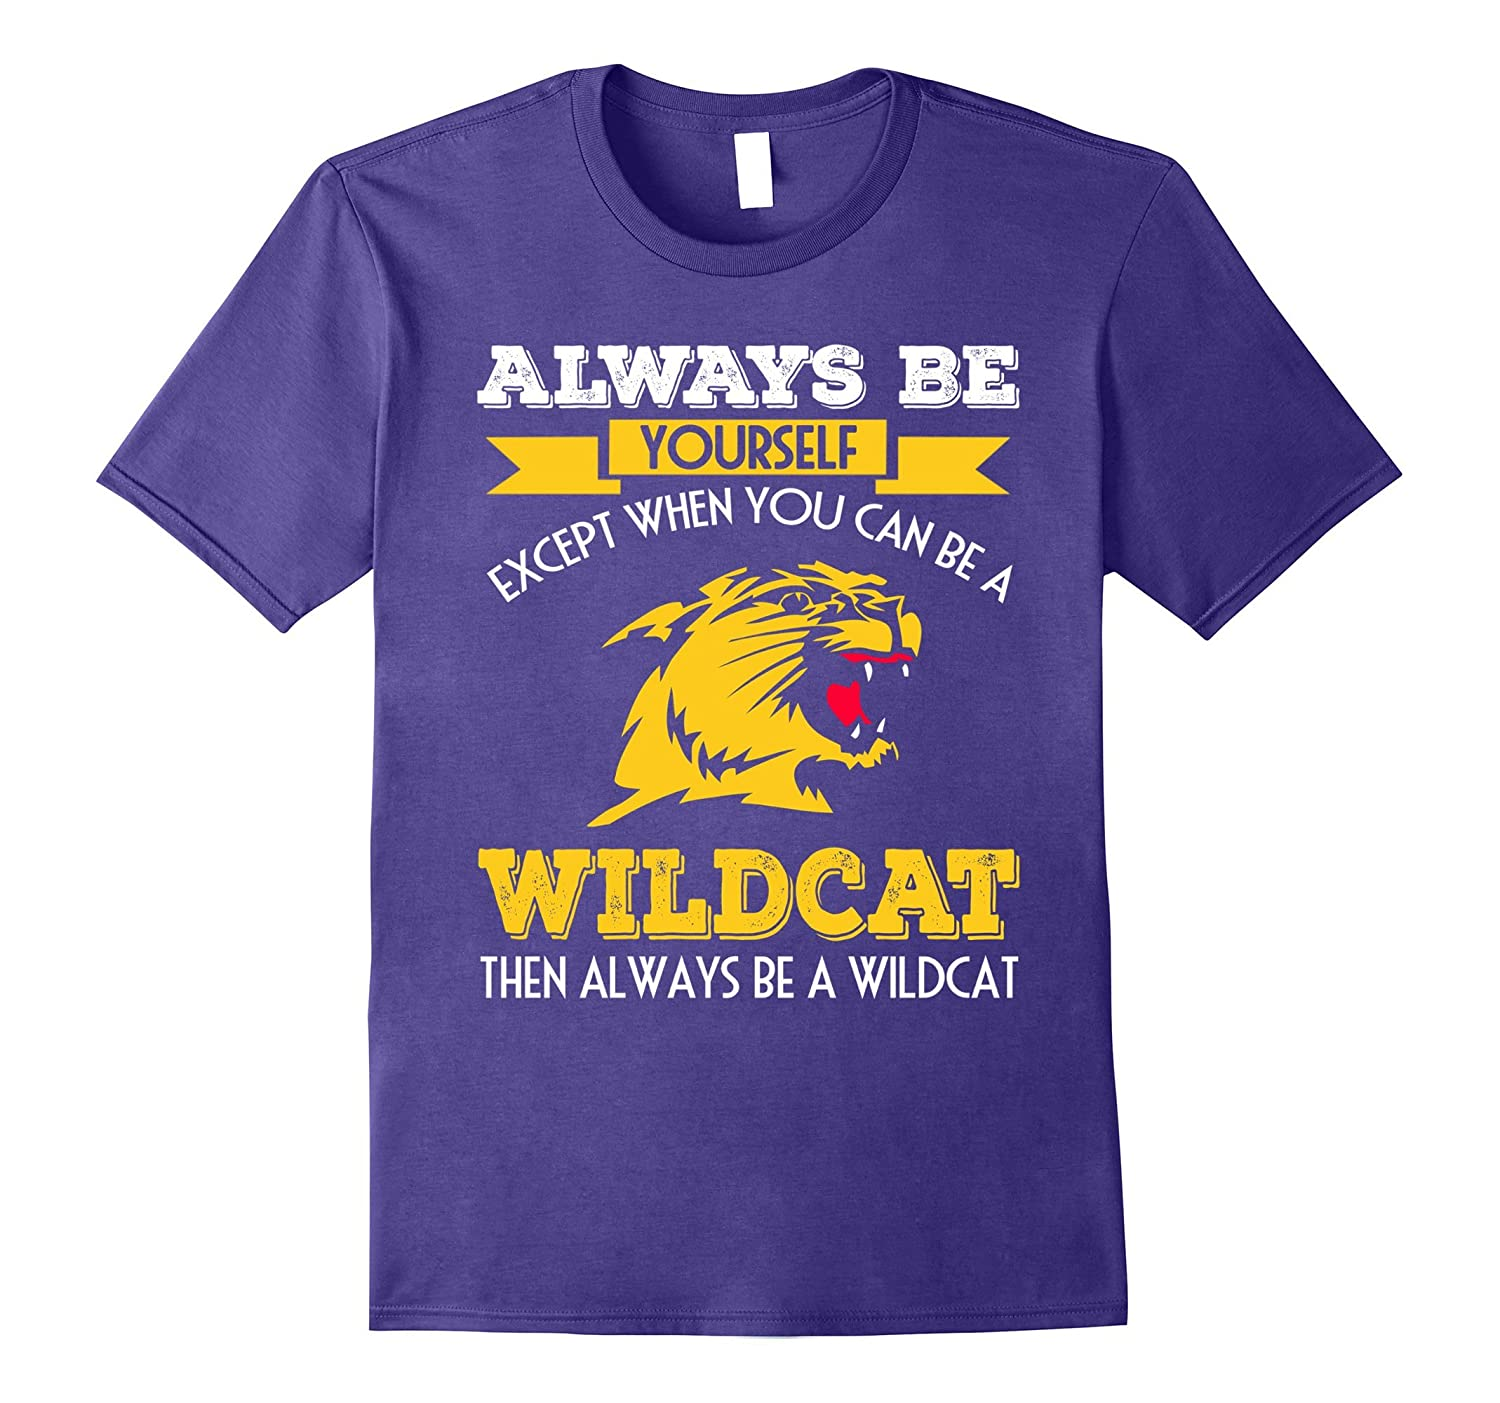 Funny Cool Always Be Yourself Or Be A Wildcat T-shirts-TJ